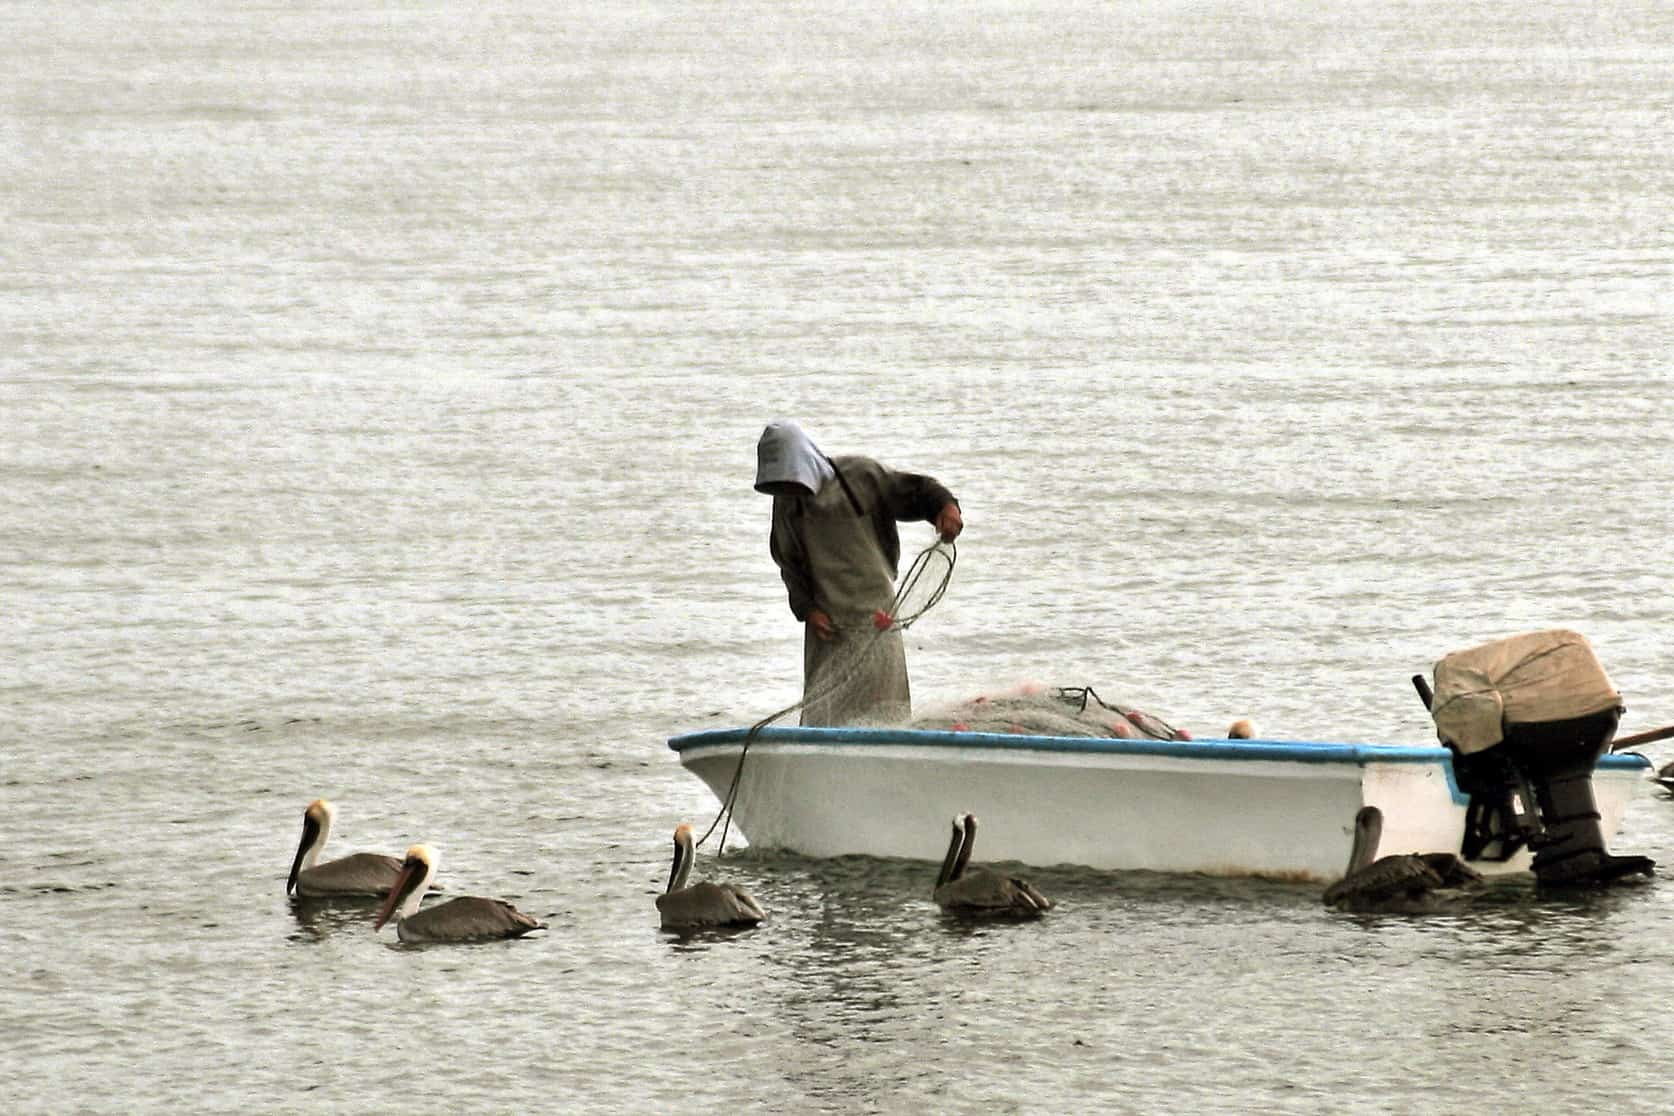 Gulf of Nicoya fishing.